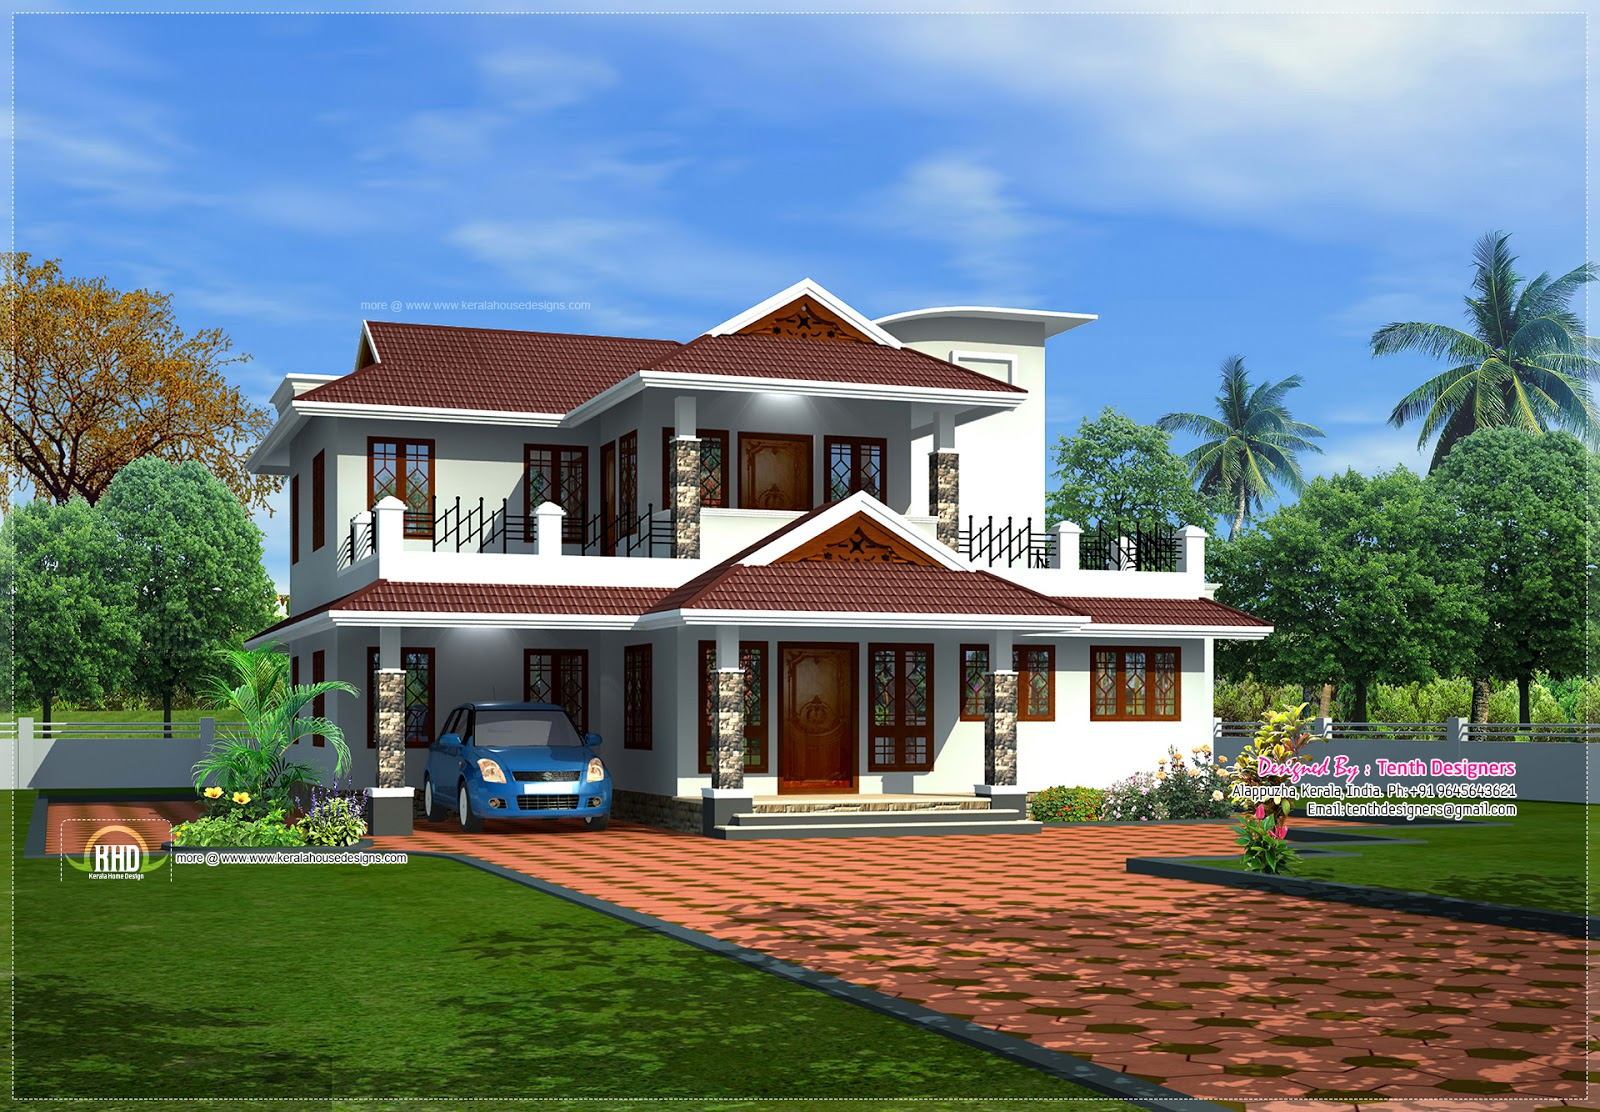 Eco friendly houses 2000 square feet kerala model home for 2000 sq ft homes